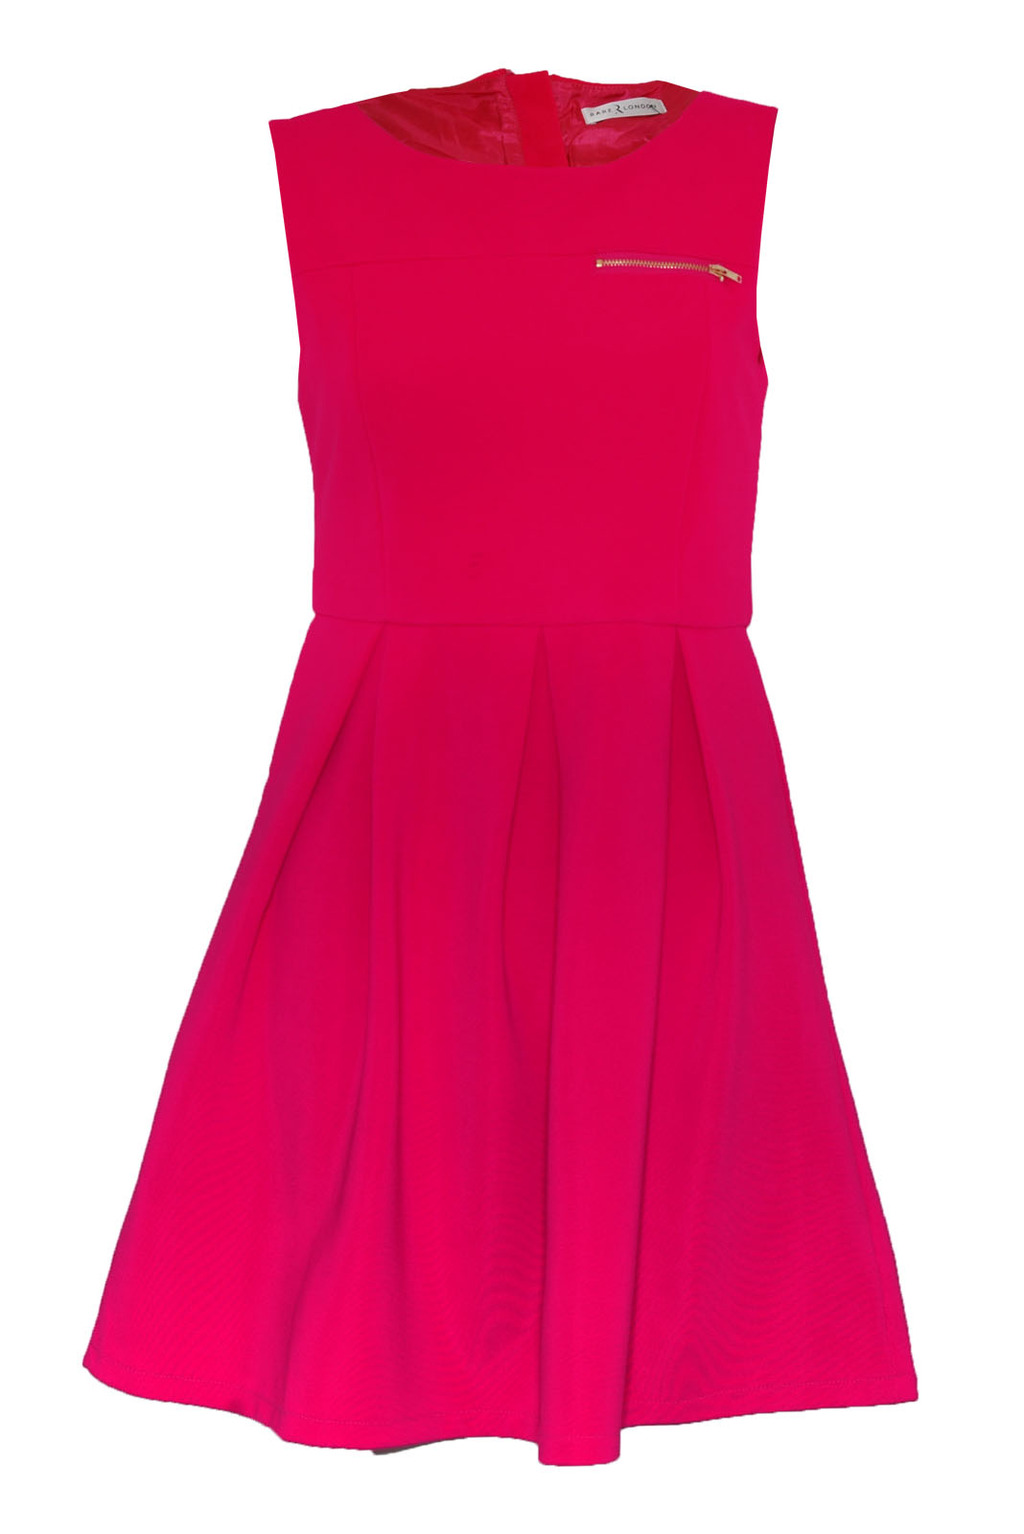 Zip Fitted Sleeveless Dress - sleeve style: sleeveless; waist detail: fitted waist; predominant colour: hot pink; occasions: casual, evening; length: just above the knee; fit: fitted at waist & bust; style: fit & flare; fibres: polyester/polyamide - 100%; neckline: crew; hip detail: subtle/flattering hip detail; sleeve length: sleeveless; pattern: patterned/print; texture group: jersey - stretchy/drapey; season: s/s 2013